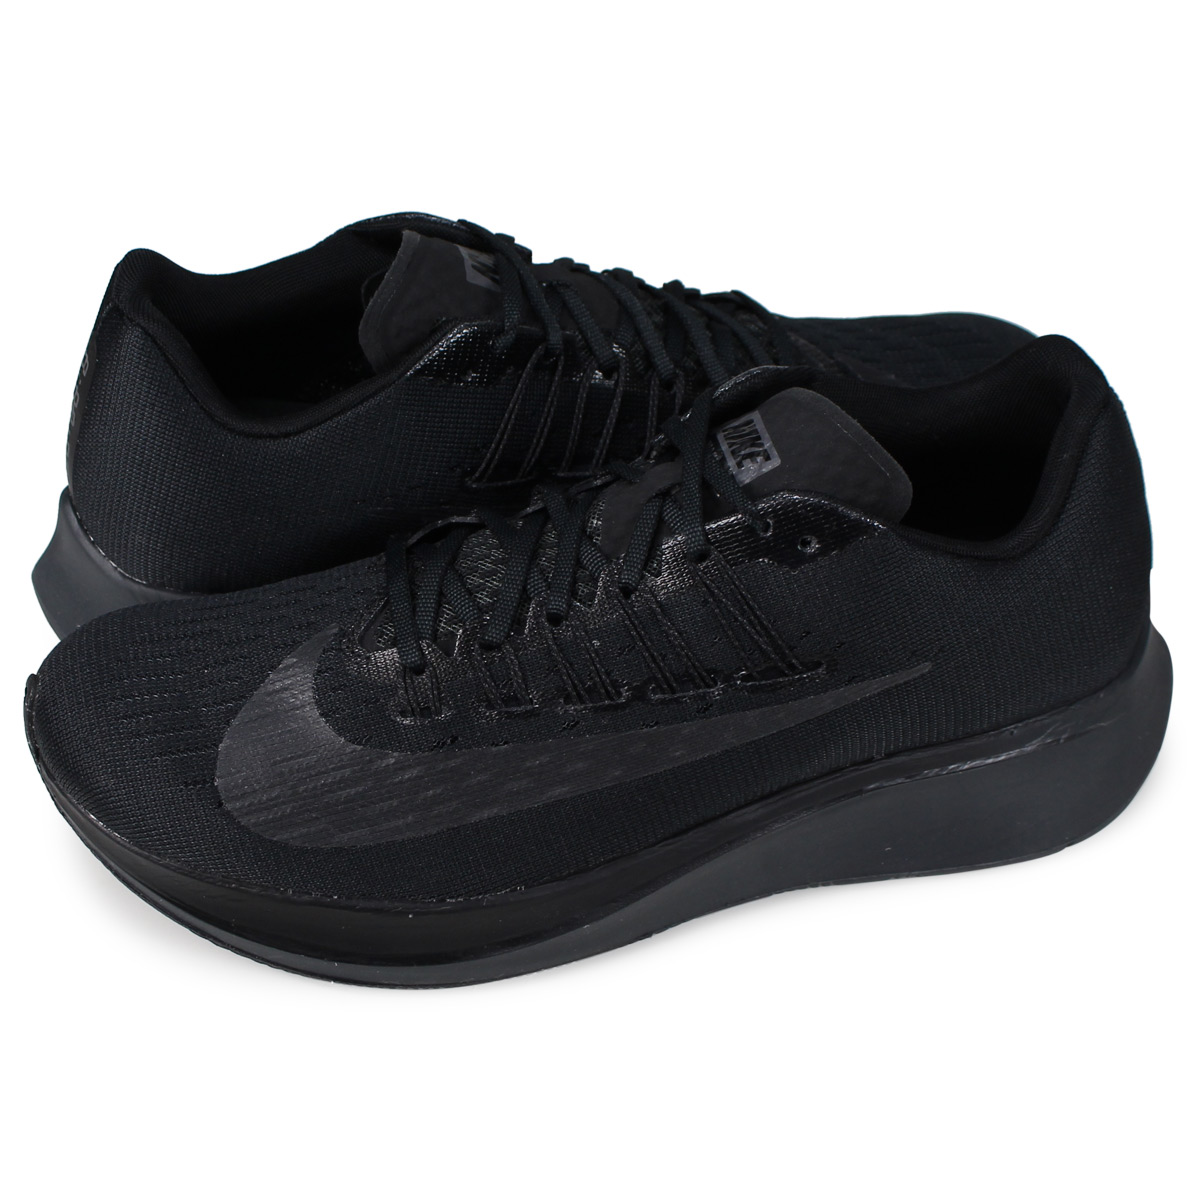 877988be874b Whats up Sports  Nike NIKE zoom fly sneakers men ZOOM FLY black ...